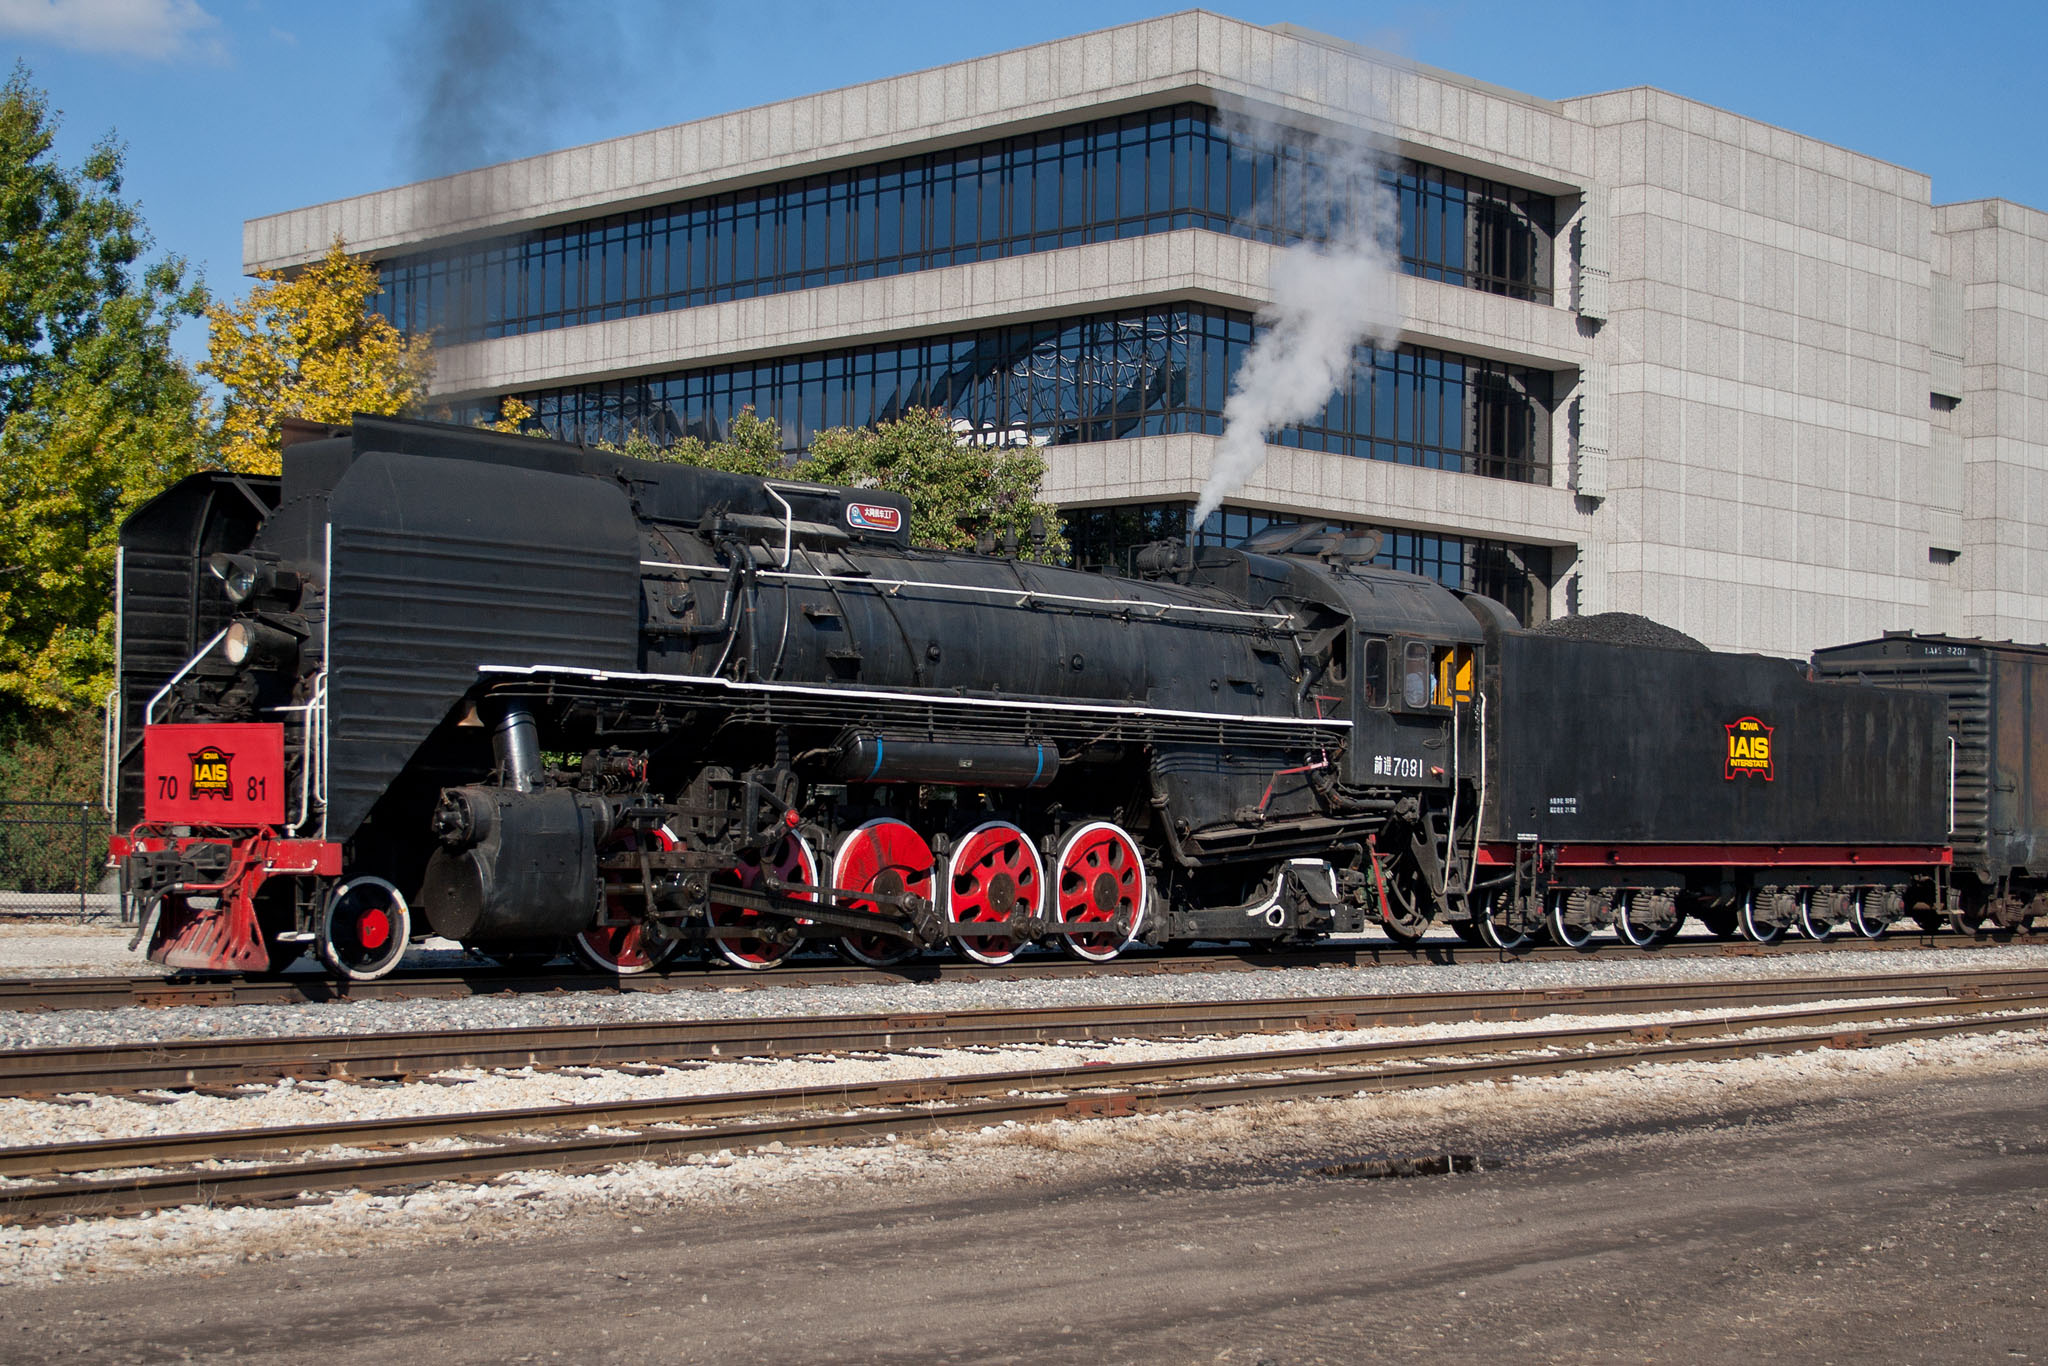 IAIS 7081 in Rock Island, IL.  October 18, 2008.